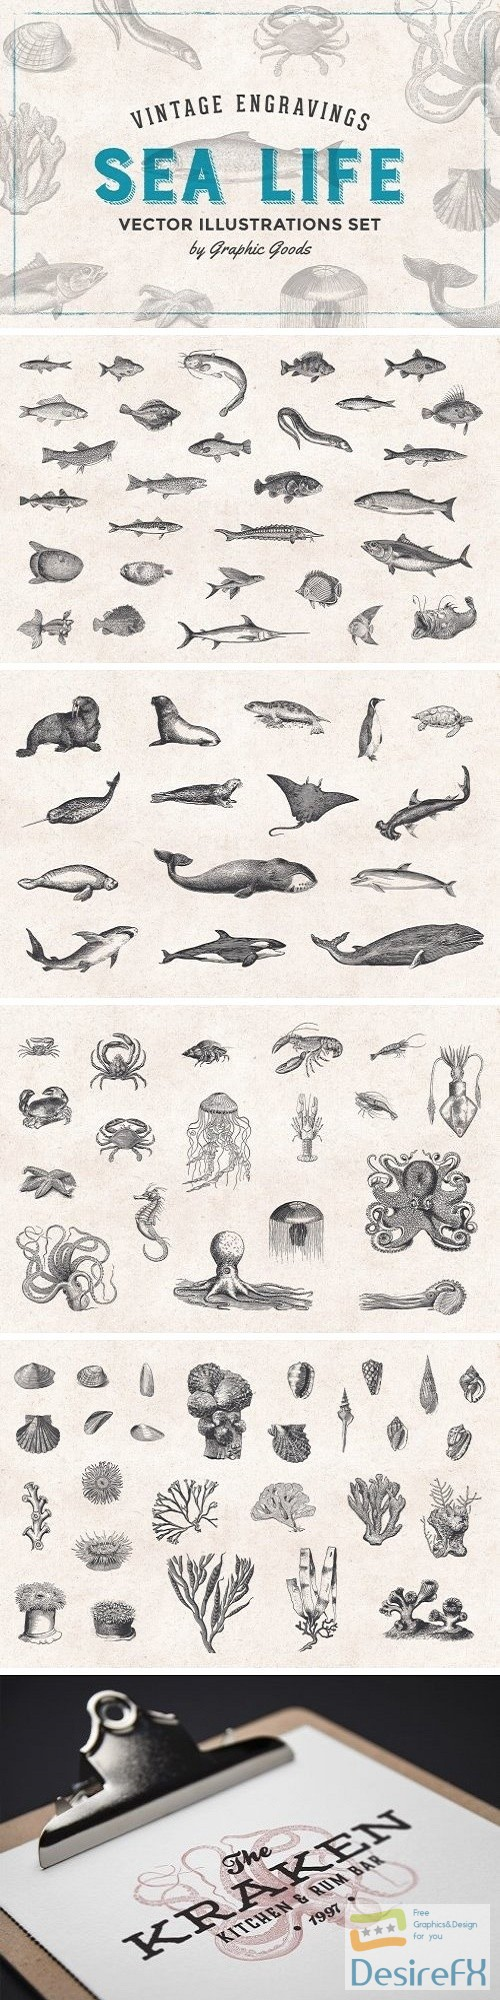 photoshop - Fishes & Sea Life Engravings Set - 1192599